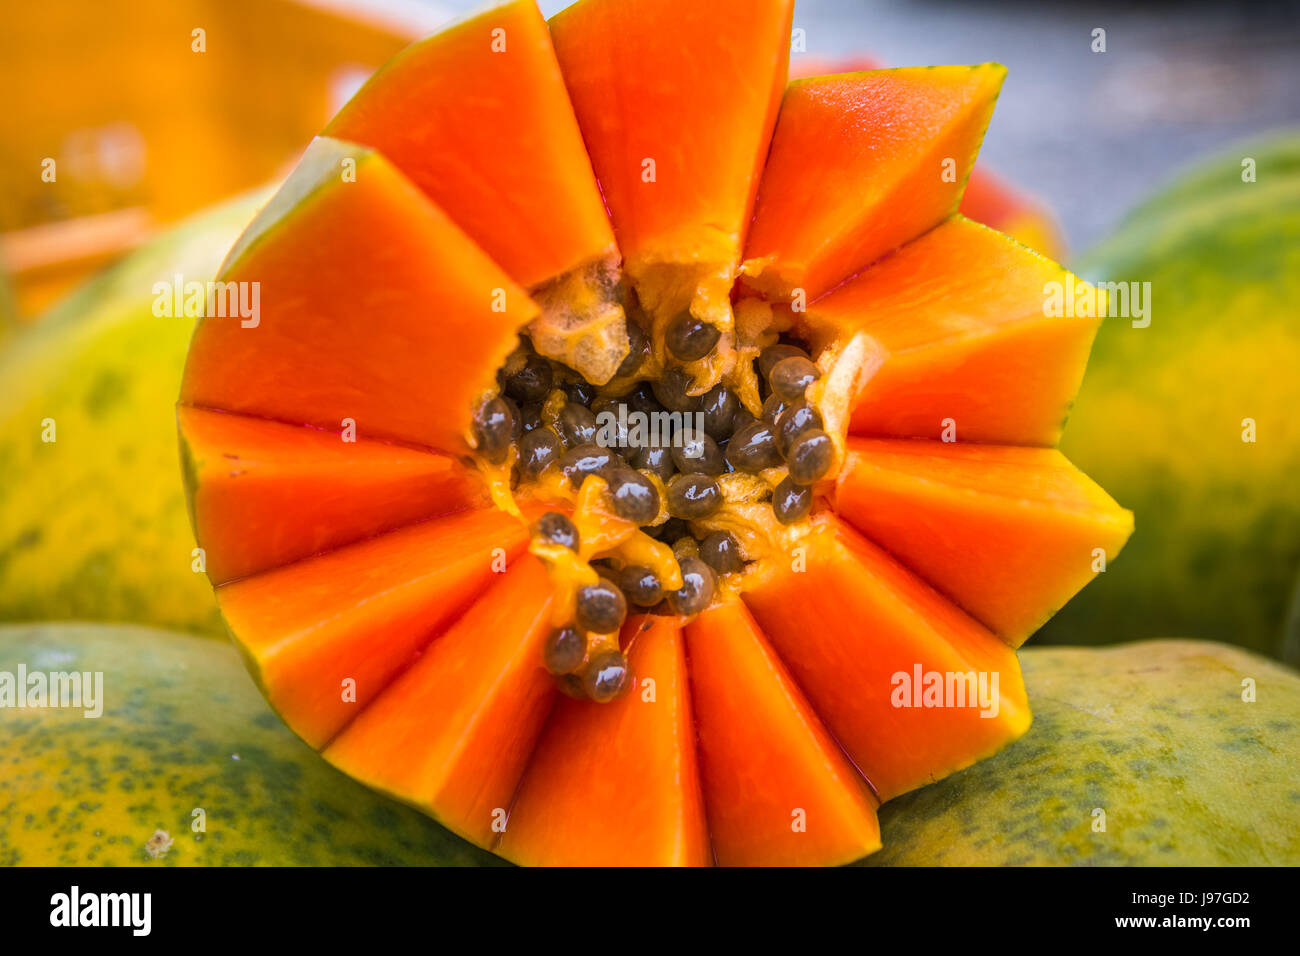 Closeup of bright orange papaya cut artfully with brown seeds surrounded by light green skinned whole papayas in - Stock Image